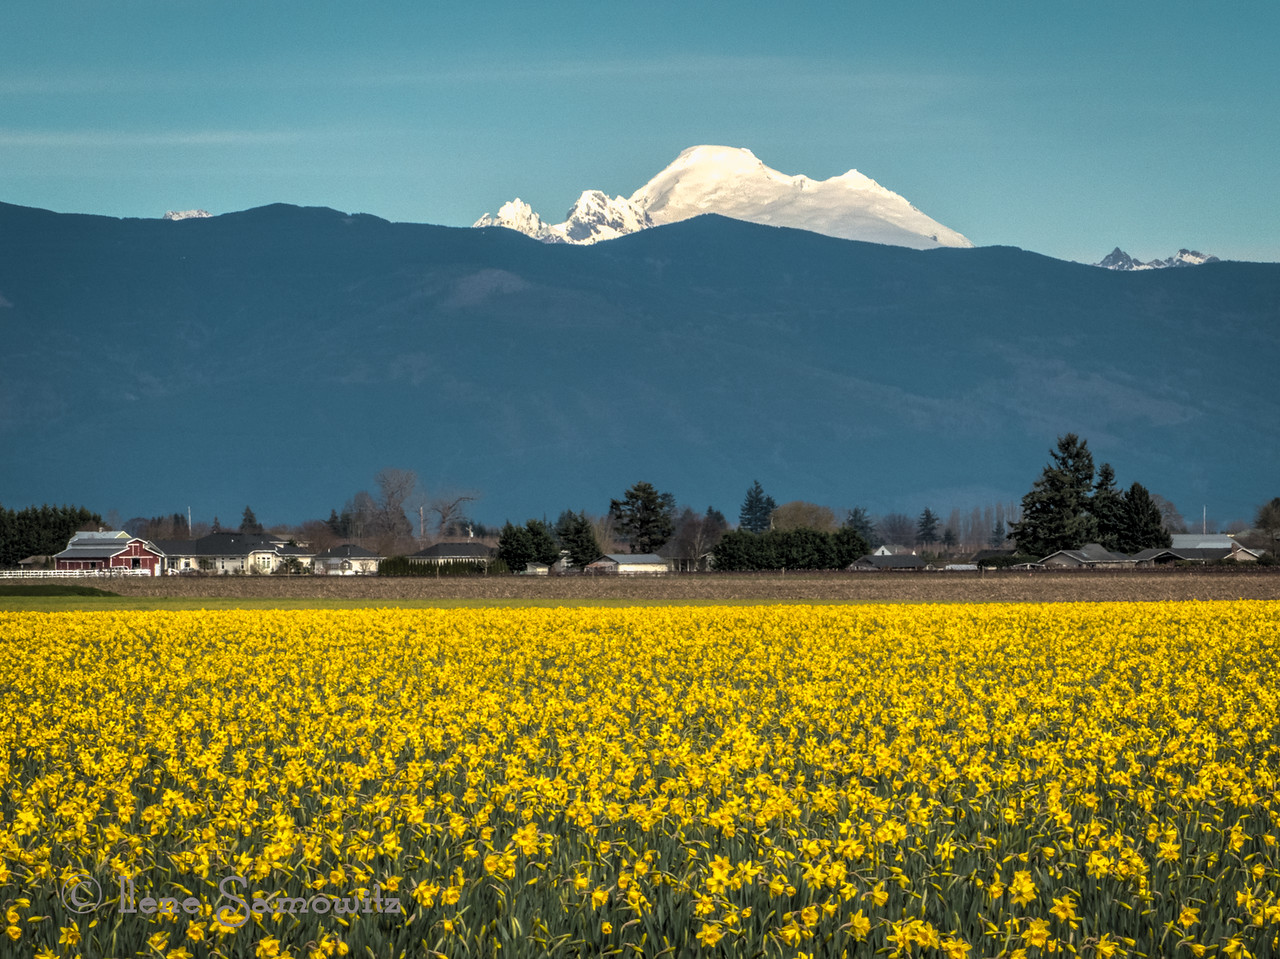 Mount baker and daffodils